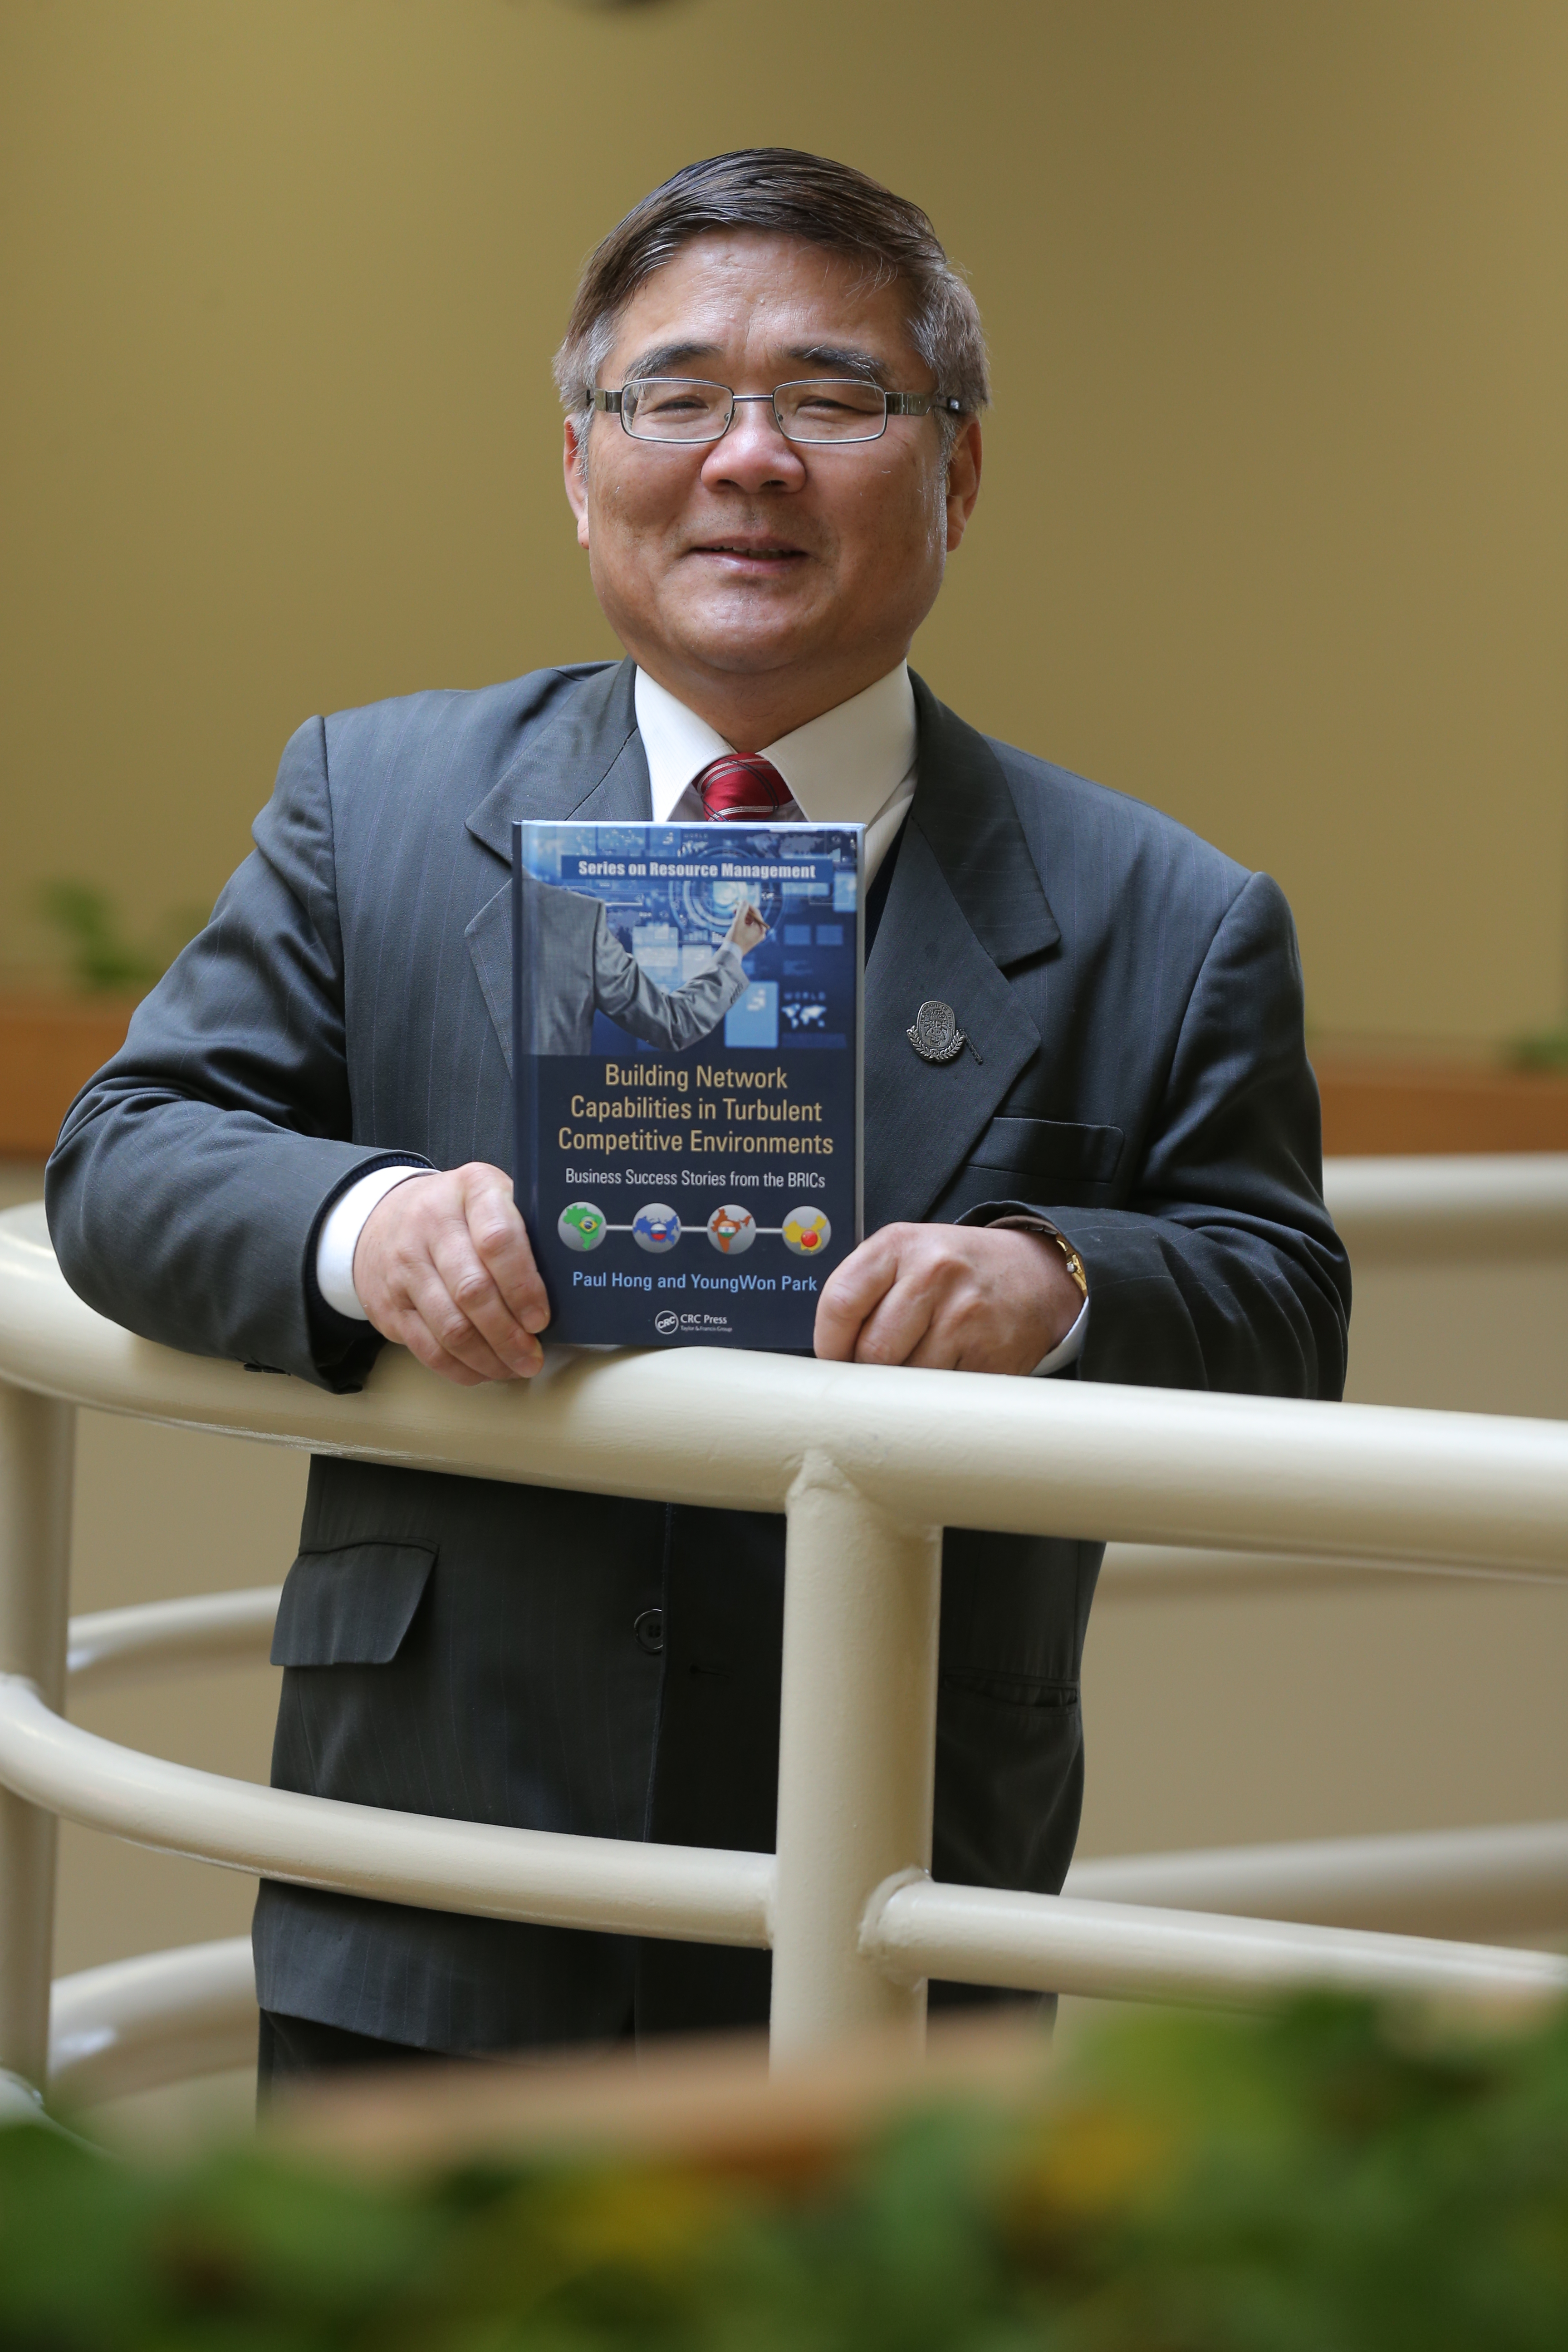 Dr. Hong and his new book